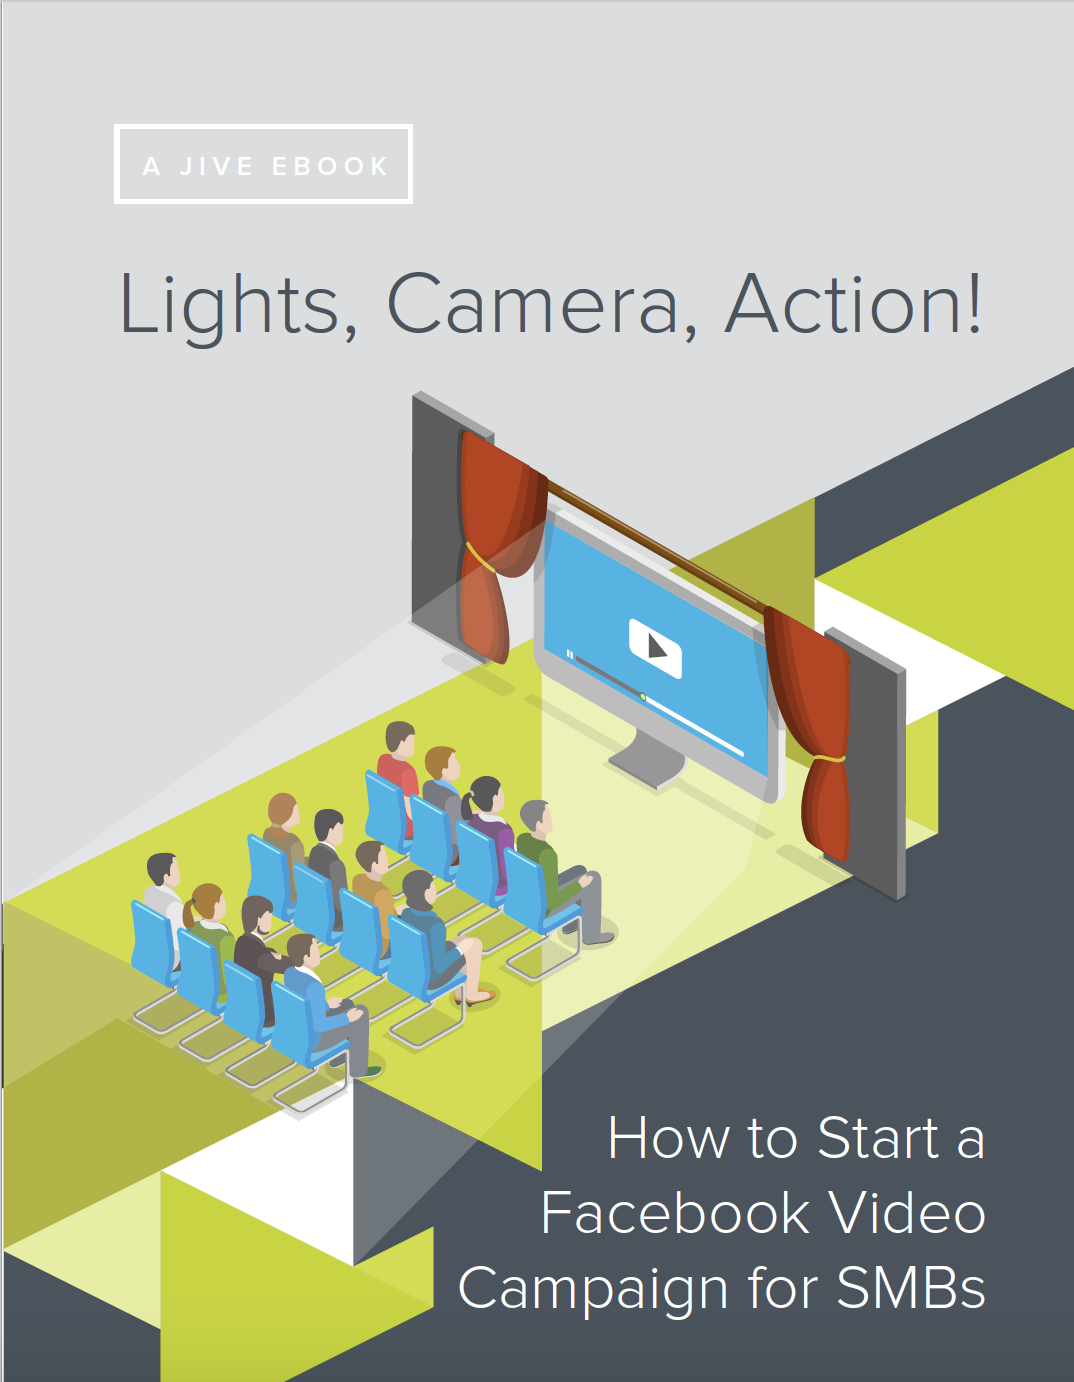 Lights, Camera, Action! How to Start a Facebook Video Campaign for SMBs